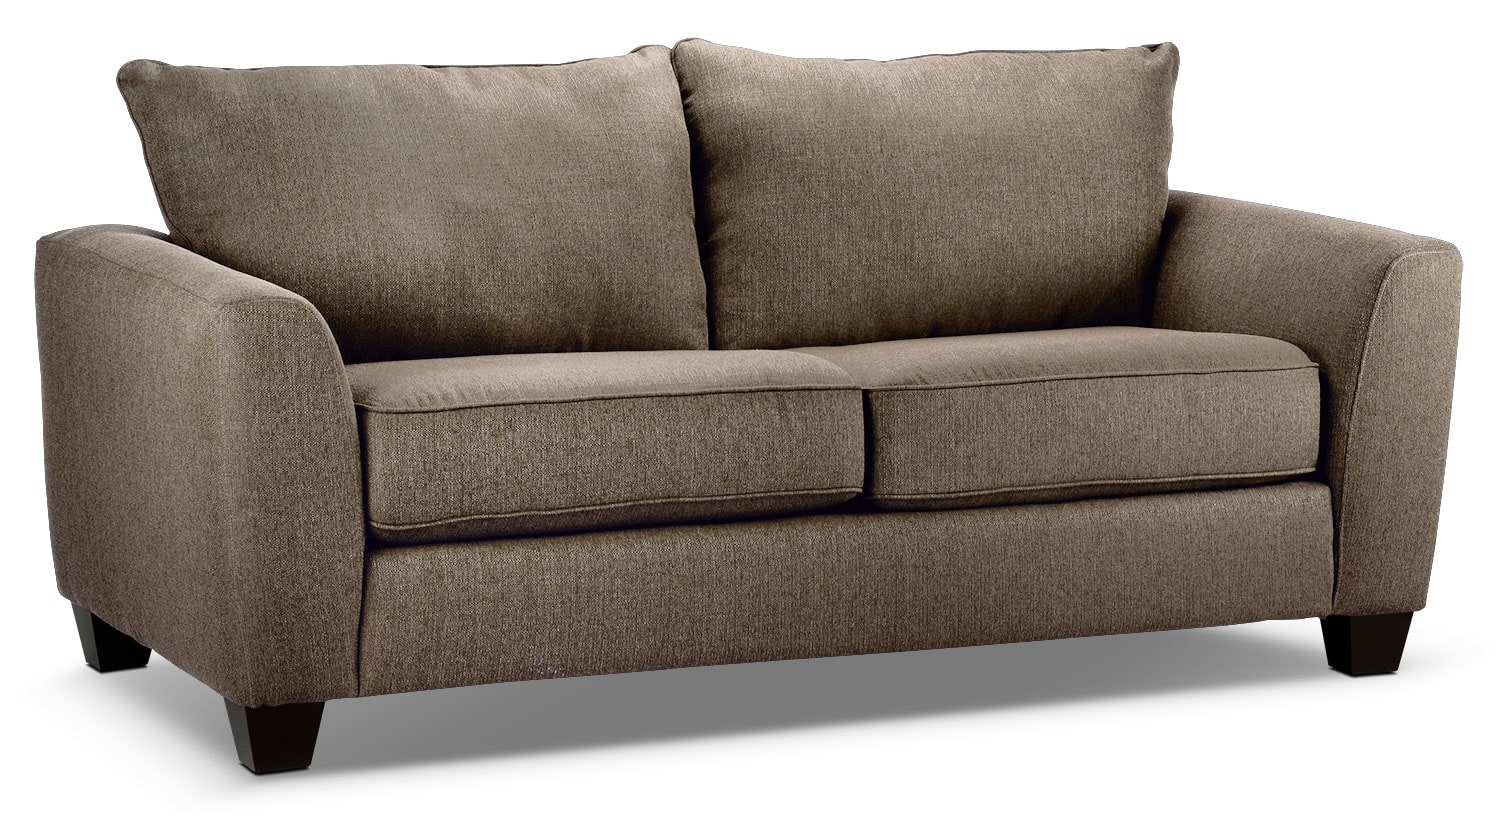 Living Room Furniture - Heritage Loveseat - Nutmeg